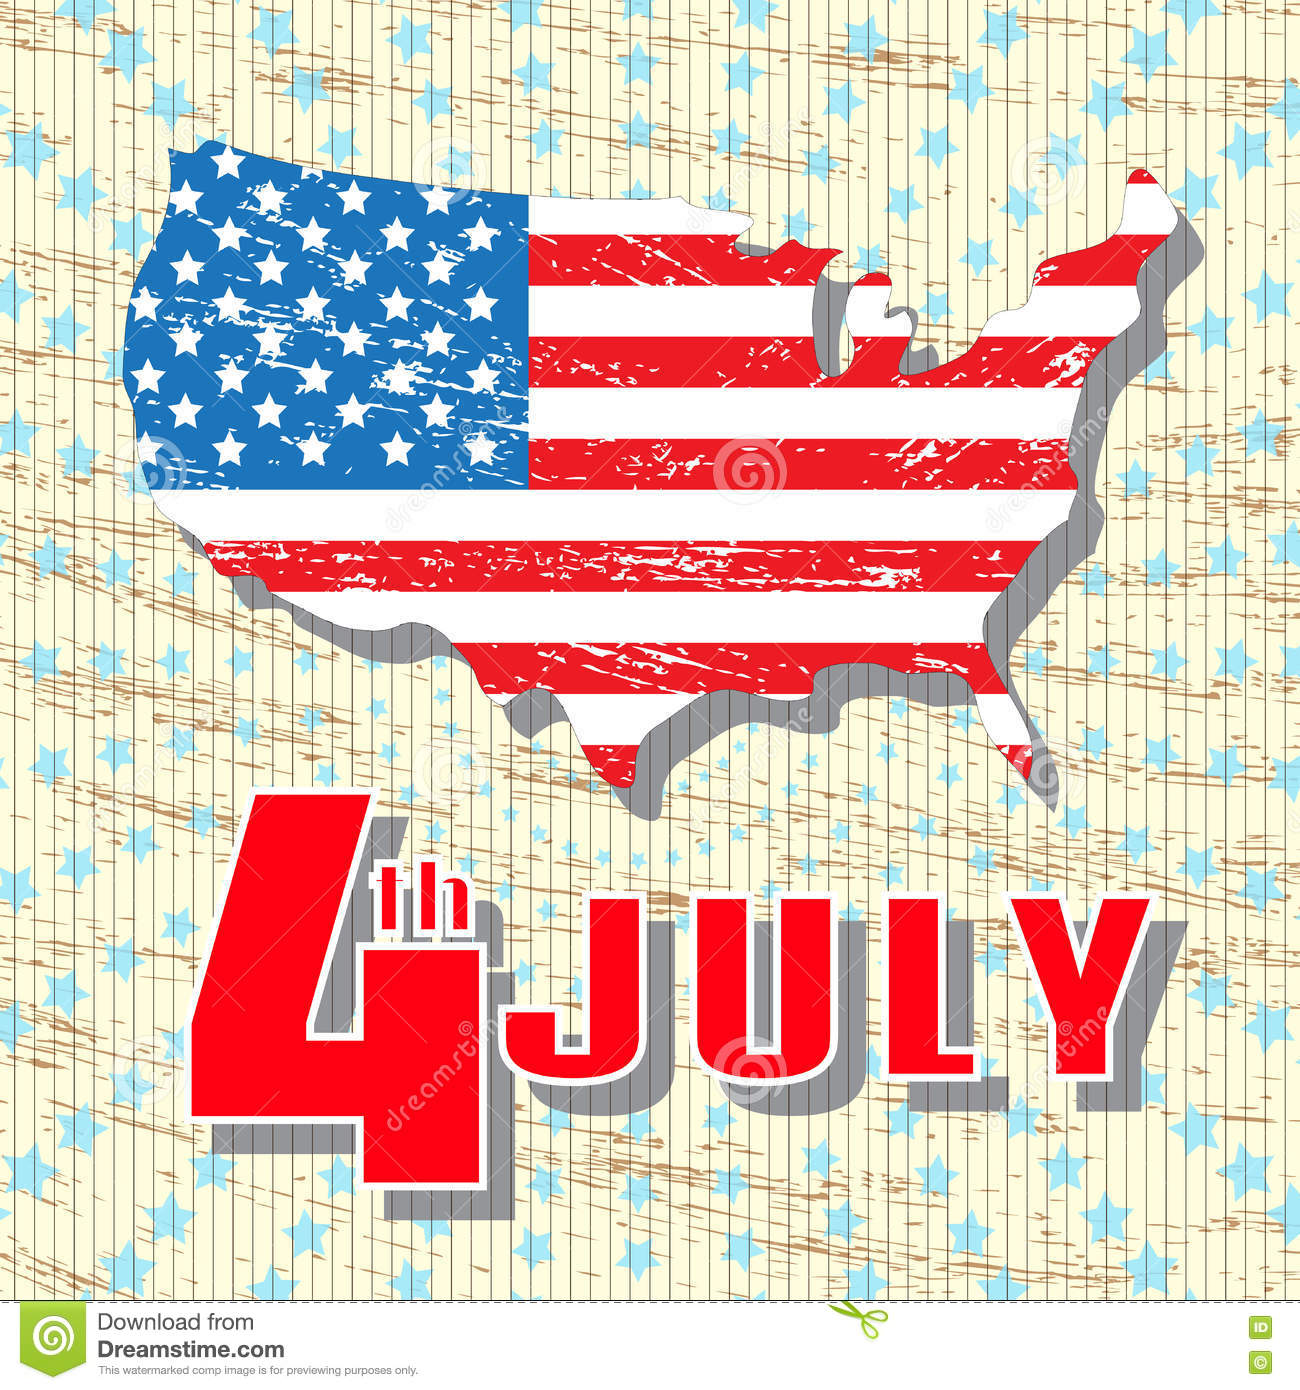 4th of July. Holiday Independence Day July 4th. Greeting vintage, retro card. Map of America in colors of the national flag